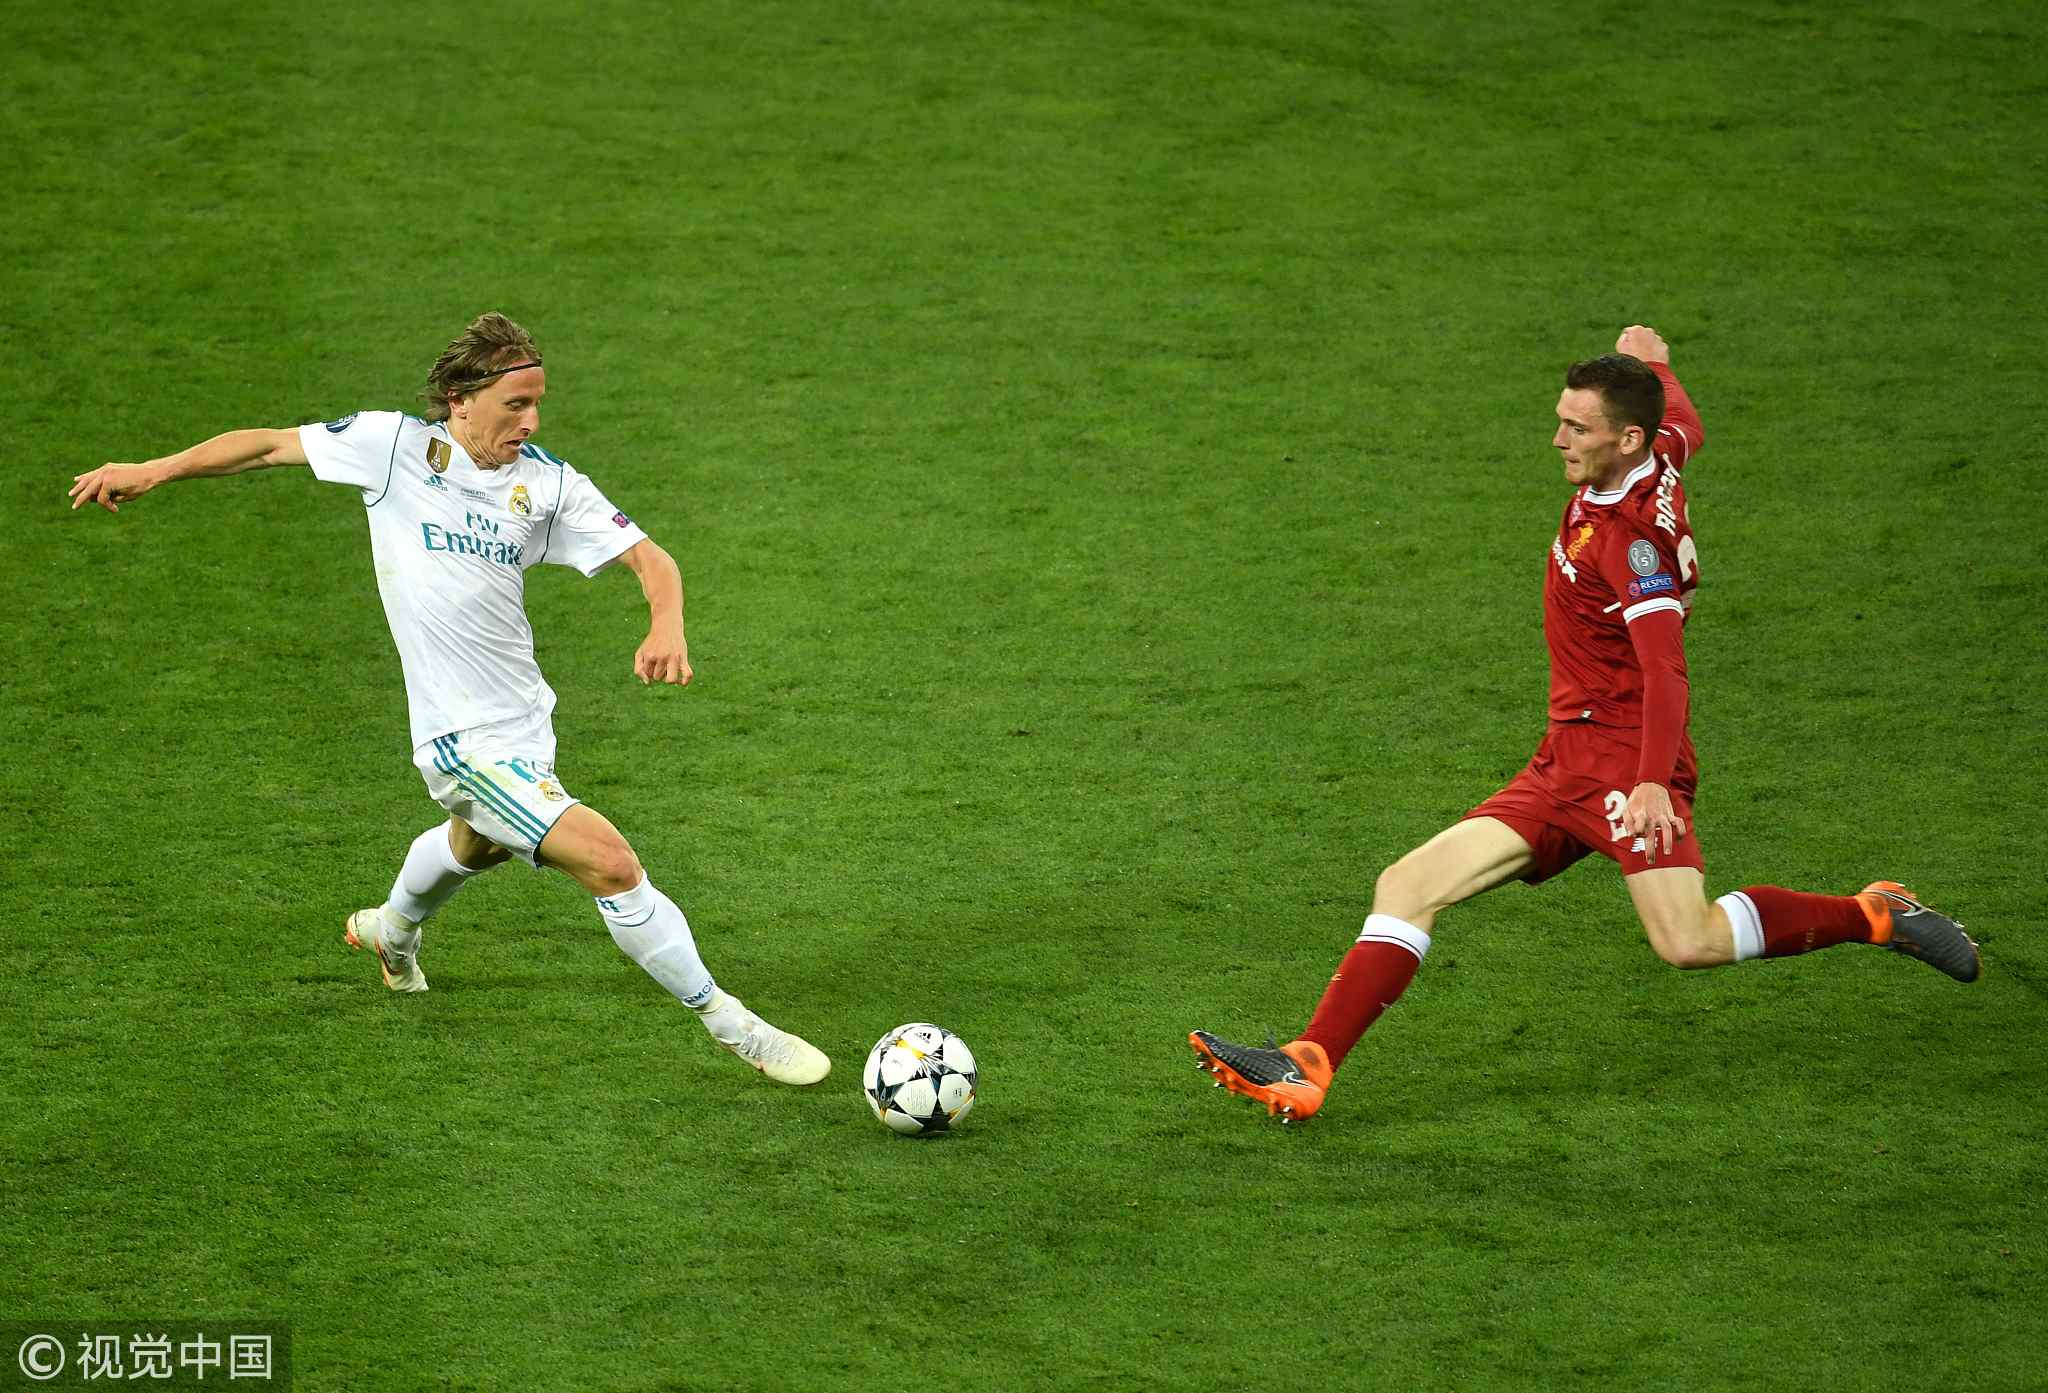 Real Madrid beat Liverpool 3-1 to win third straight UEFA Champions League